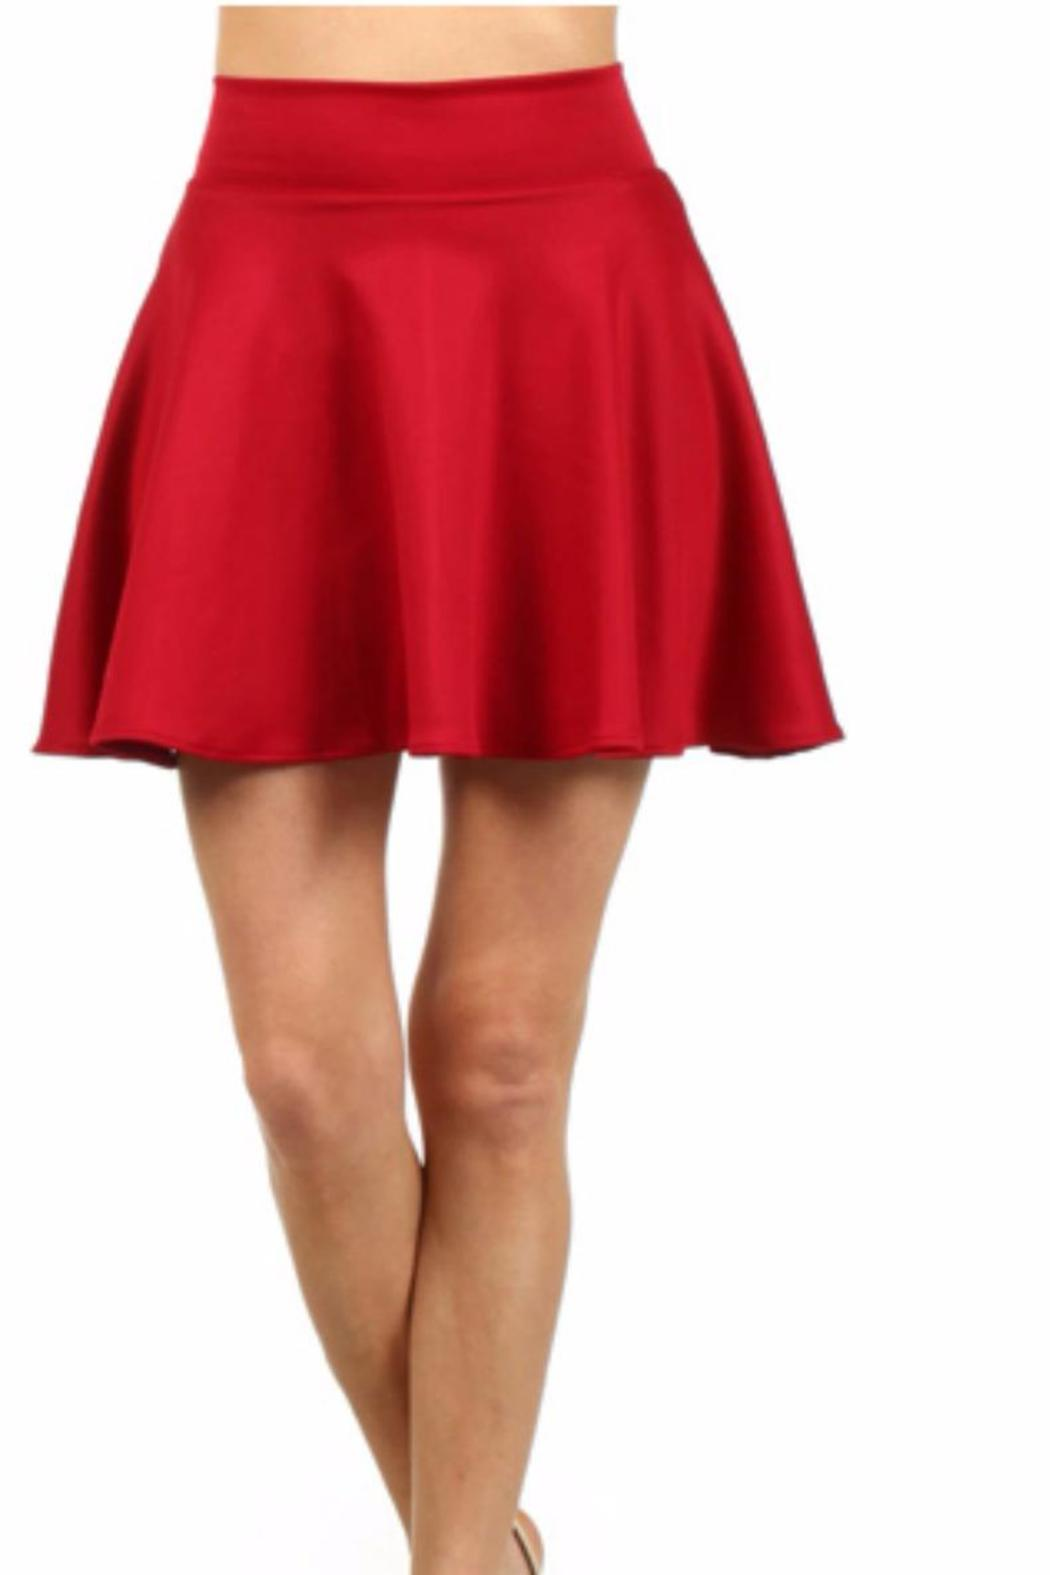 5c2e51f1 Color 5 Red Skater Skirt from San Diego by BRANDED — Shoptiques